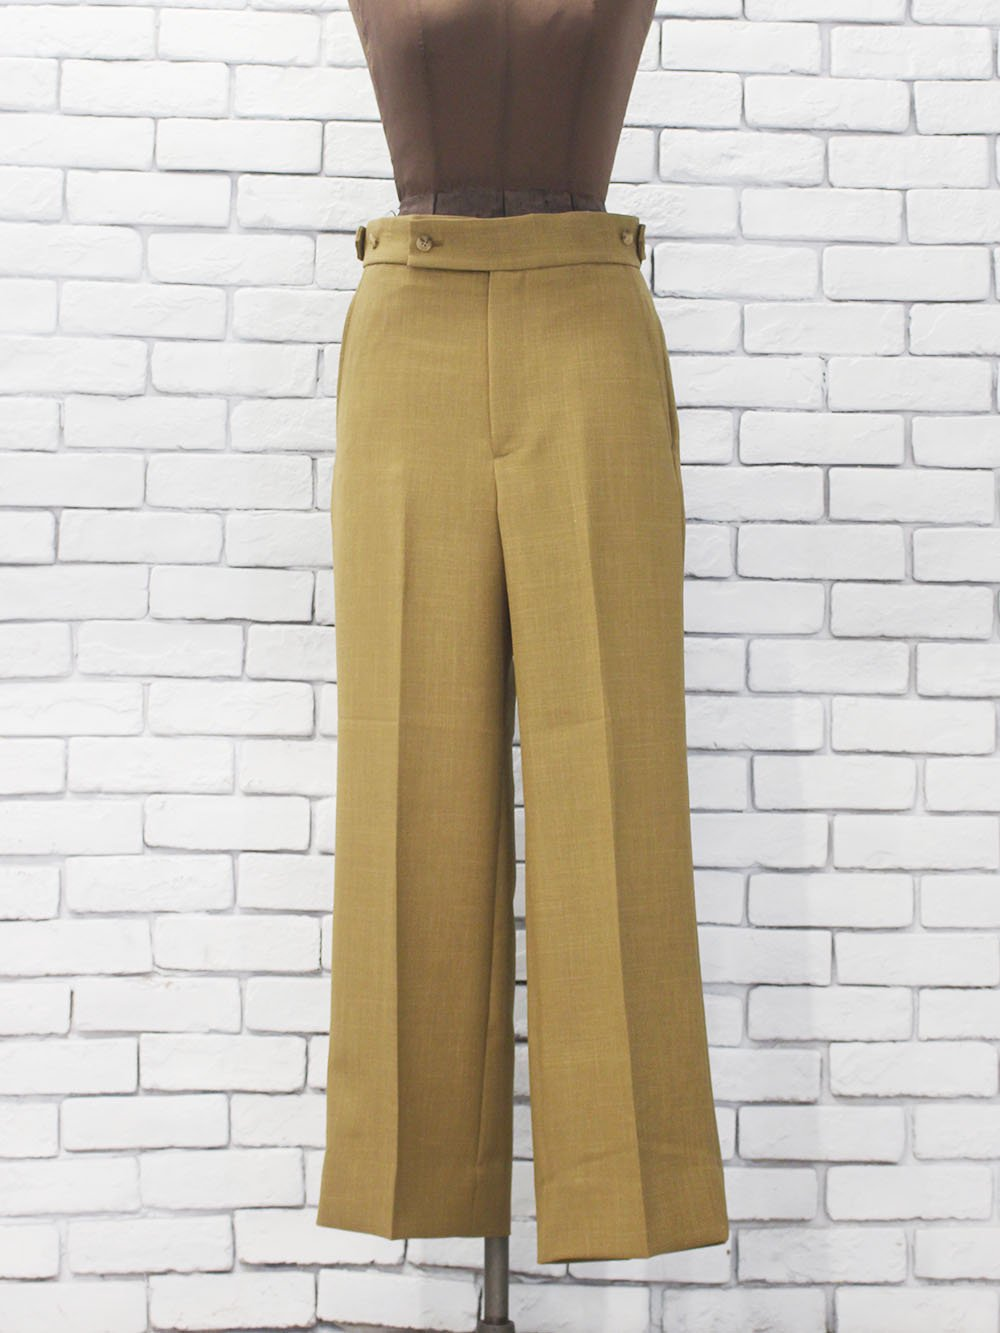 """<img class='new_mark_img1' src='https://img.shop-pro.jp/img/new/icons8.gif' style='border:none;display:inline;margin:0px;padding:0px;width:auto;' />Needles """" Side Tab Trouser - Pony Dobby Twill """""""